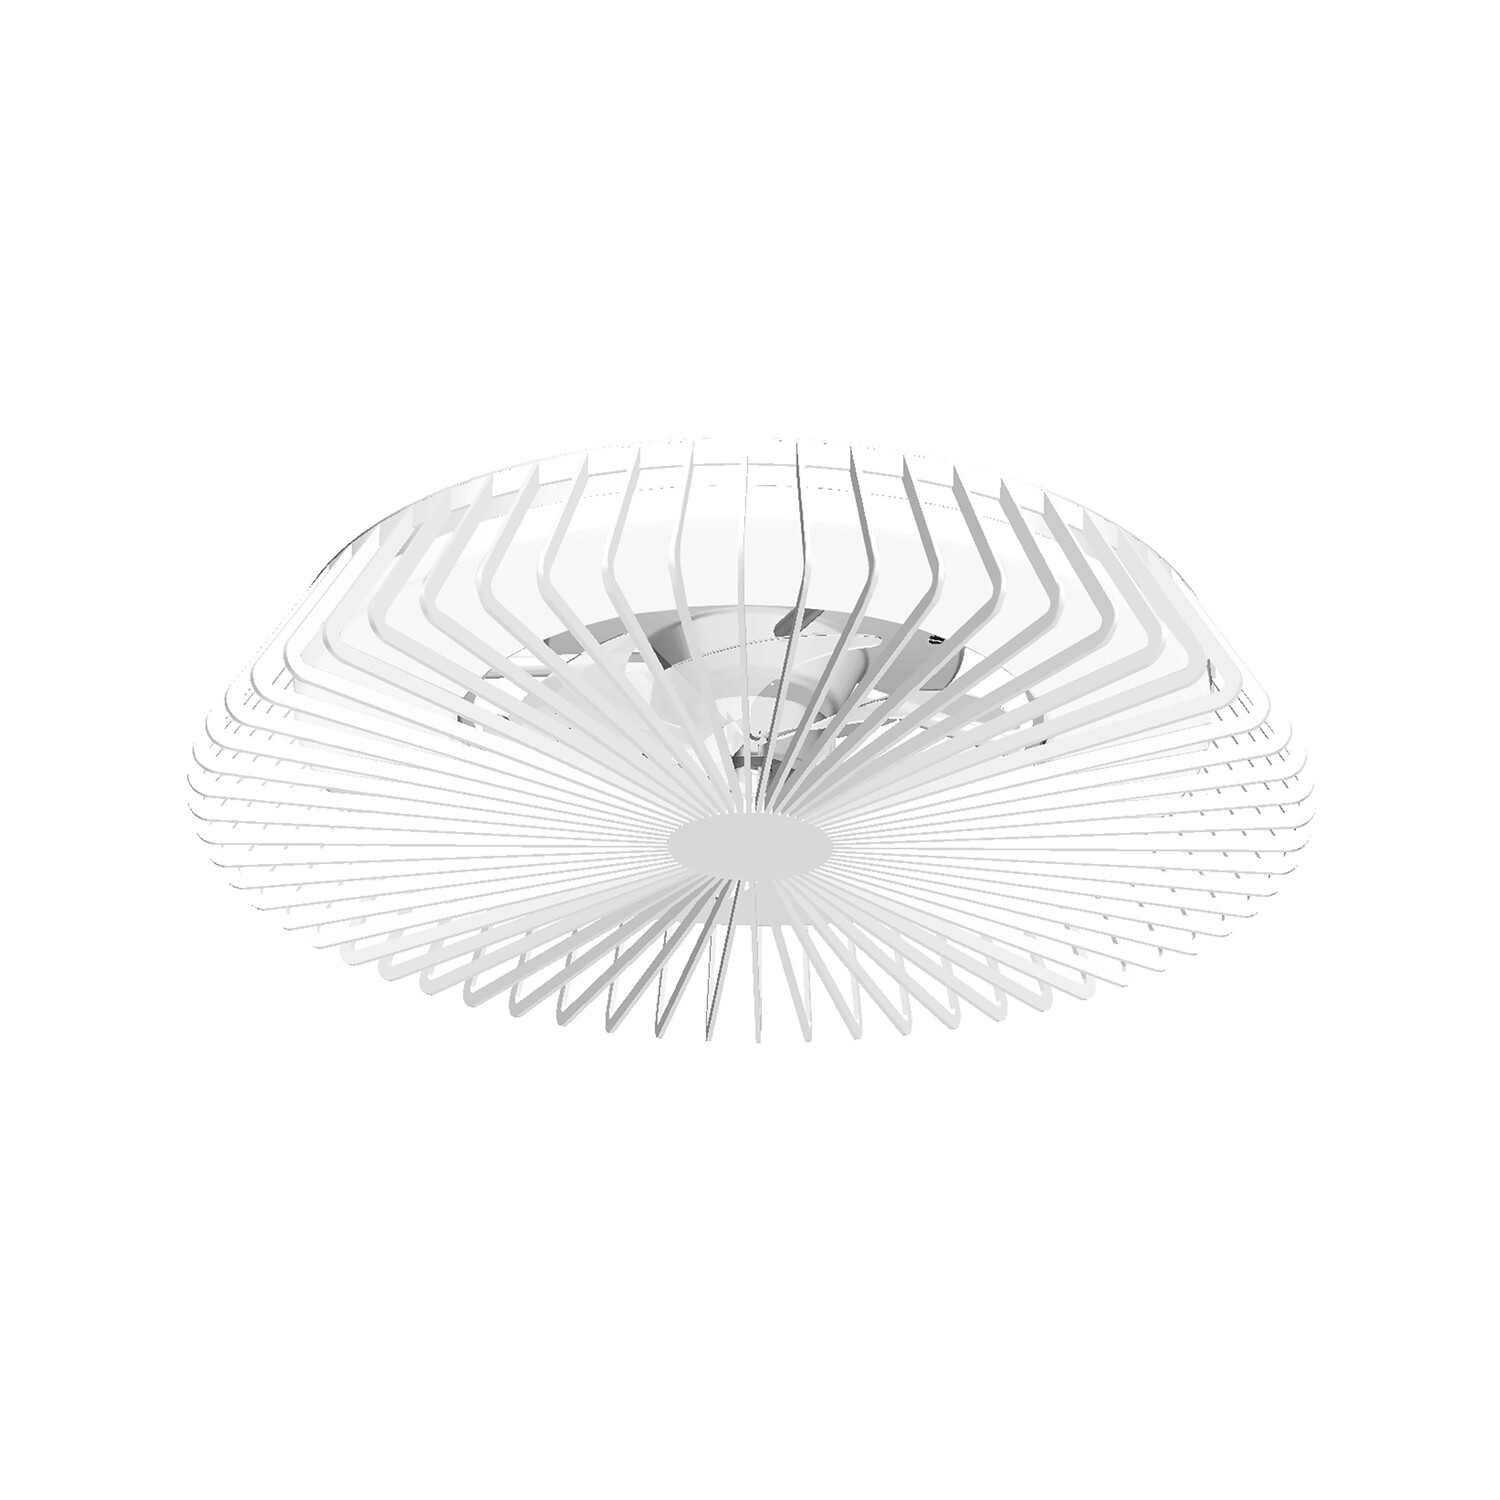 Himalaya 70W LED Dimmable Ceiling Light With Built-In 30W DC Fan, c/w Remote Control and APP Control, 3000lm, White, 5yrs Warranty